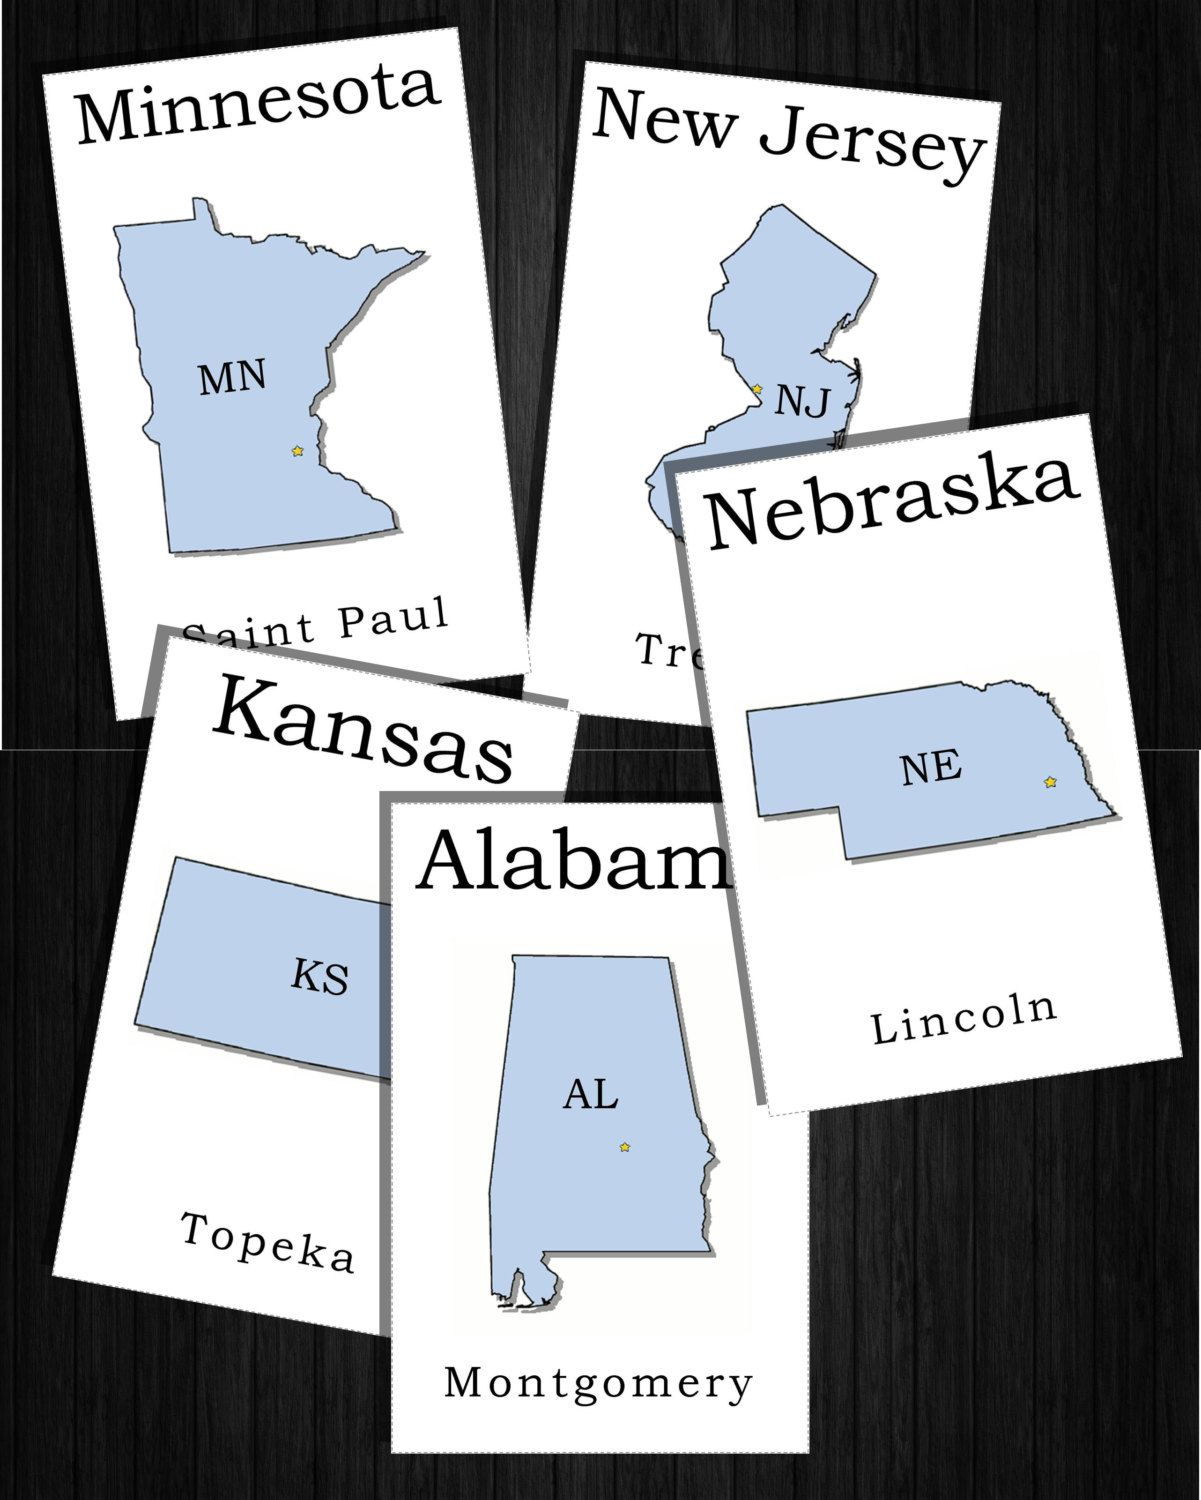 Download All 50 States And Capitals Flashcards With State